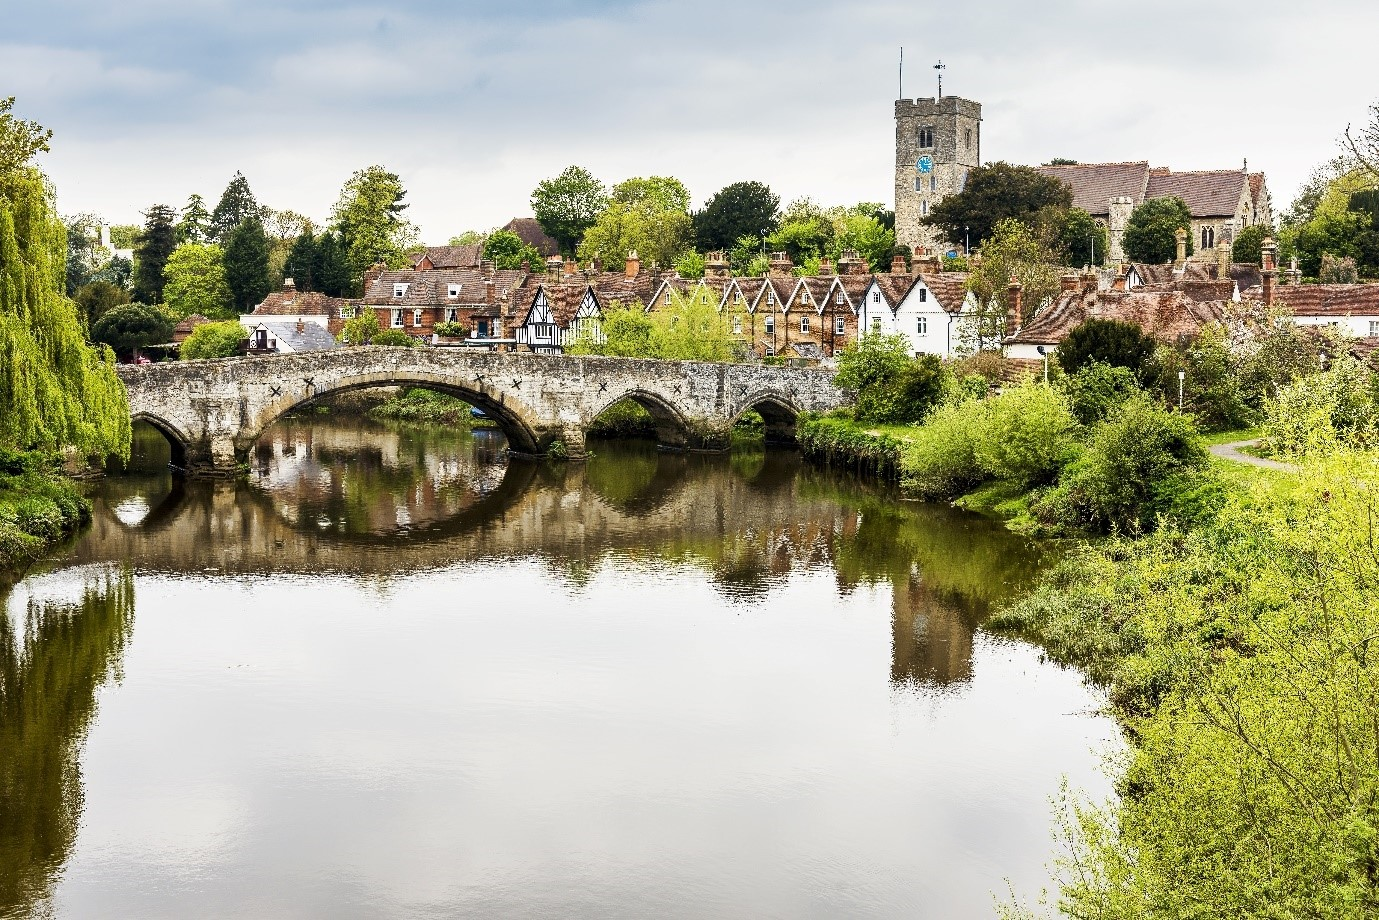 beautiful pretty British waterside village traditional period homes bridge in Maidstone, Kent